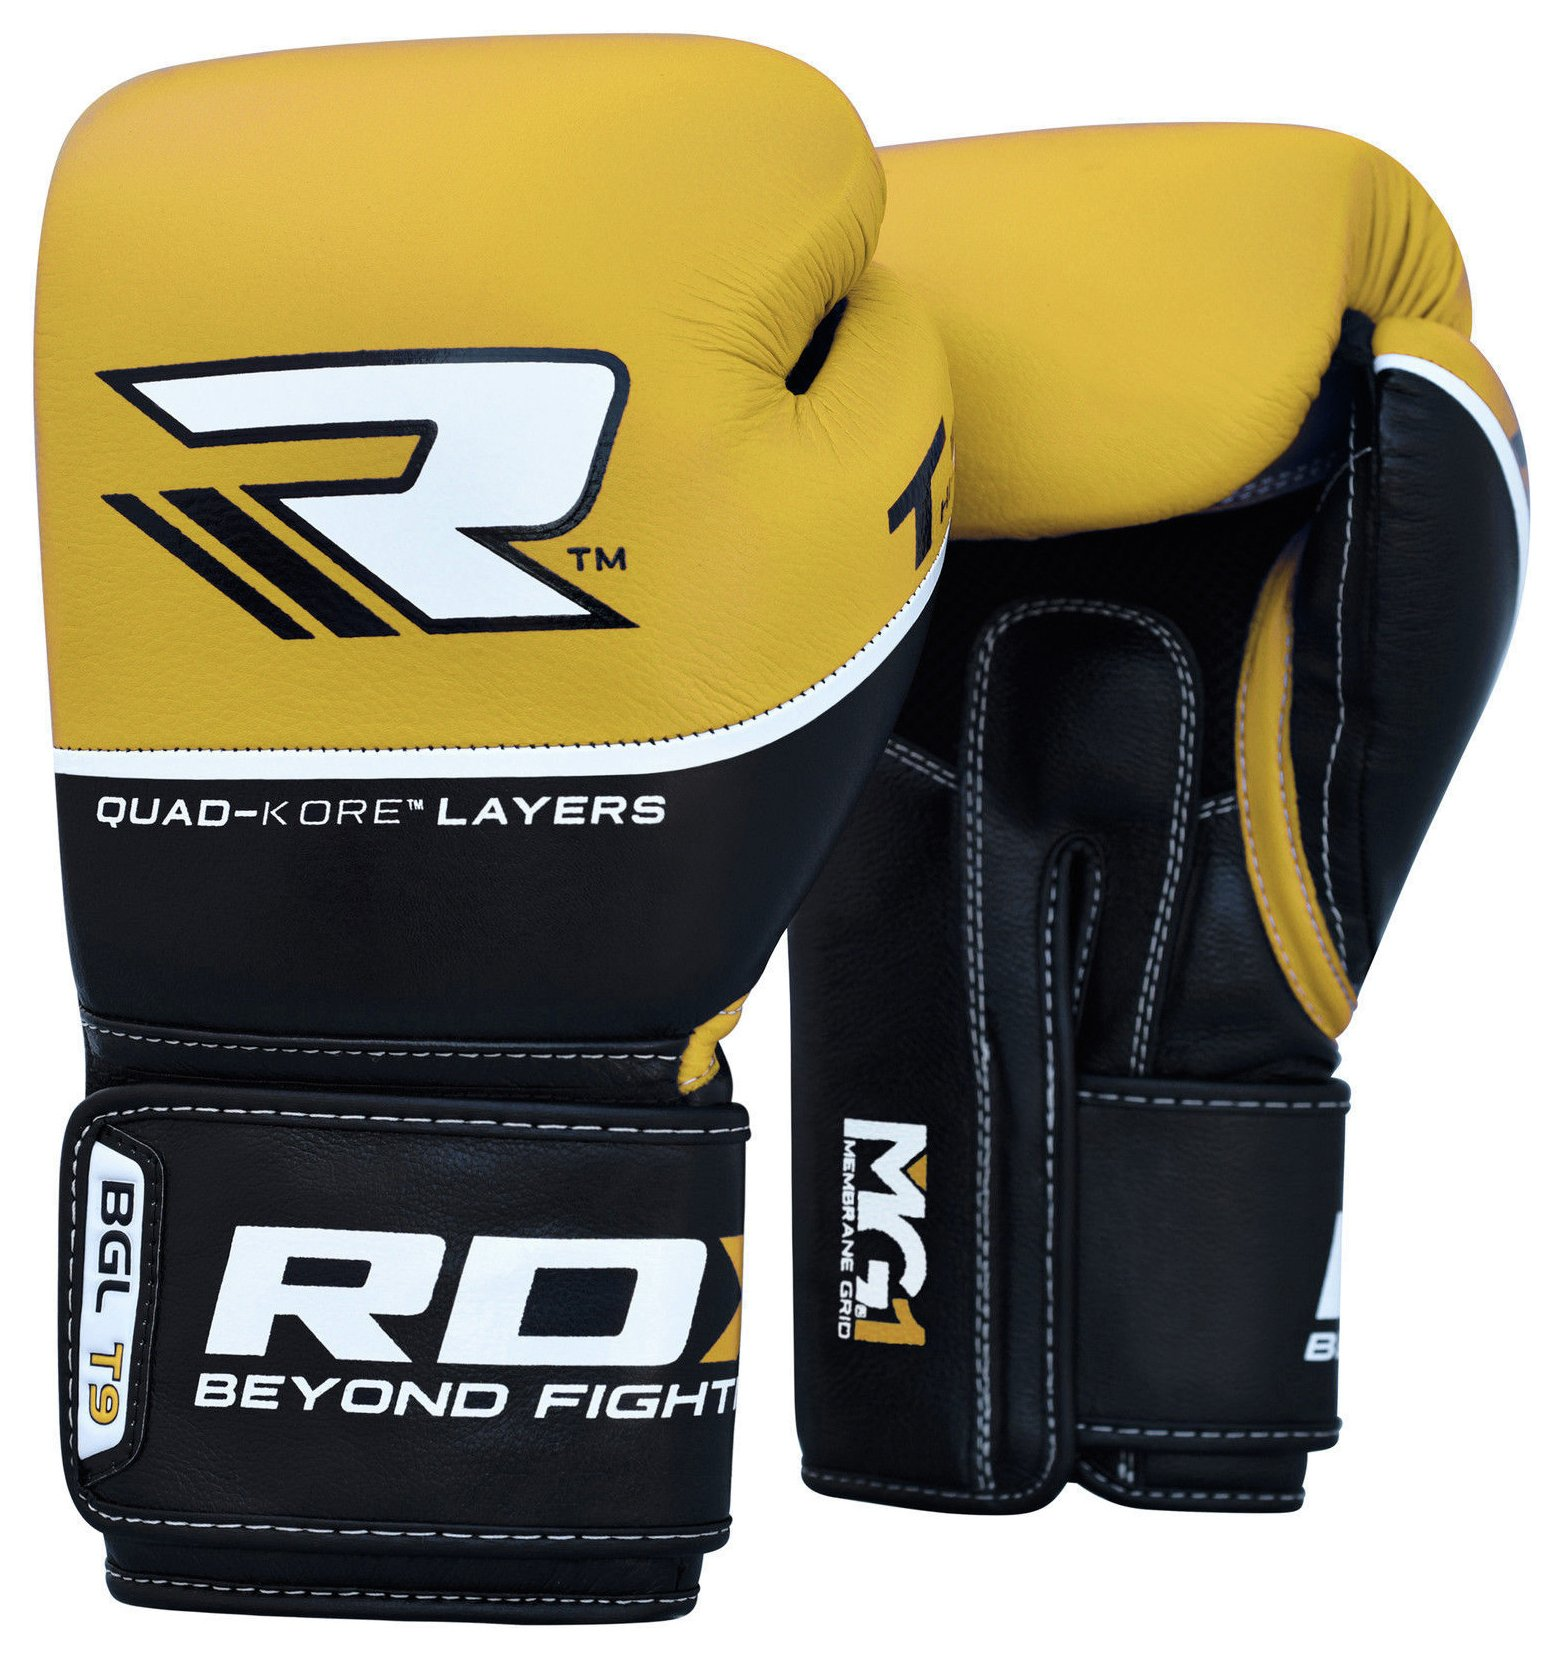 RDX - Quad Kore 14oz Boxing Gloves - Yellow lowest price